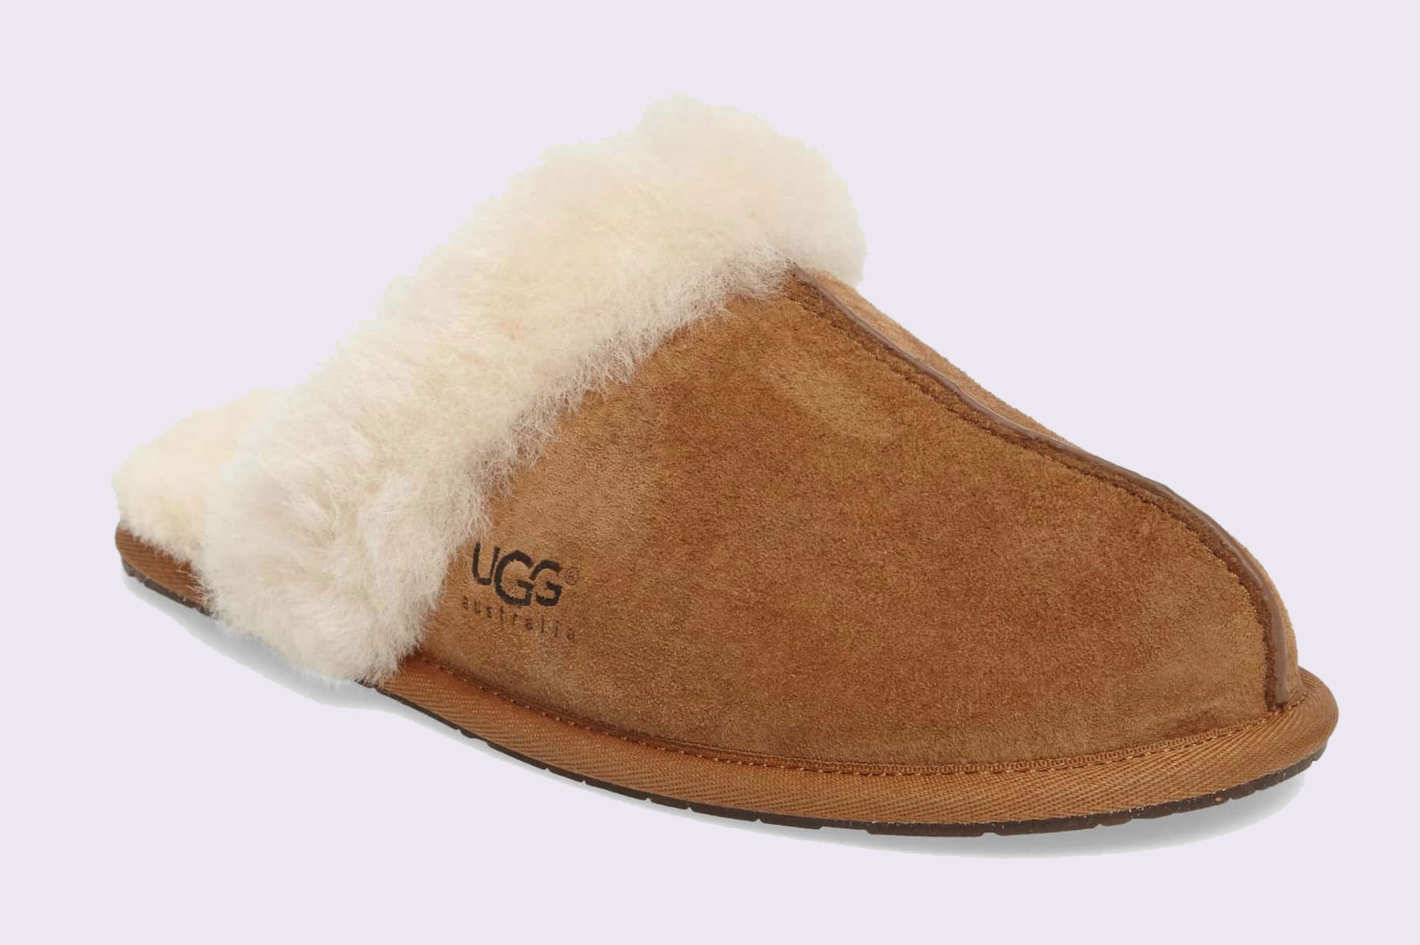 019c3fadc40 UGG Scuffettte II Water Resistant Slipper at Nordstrom